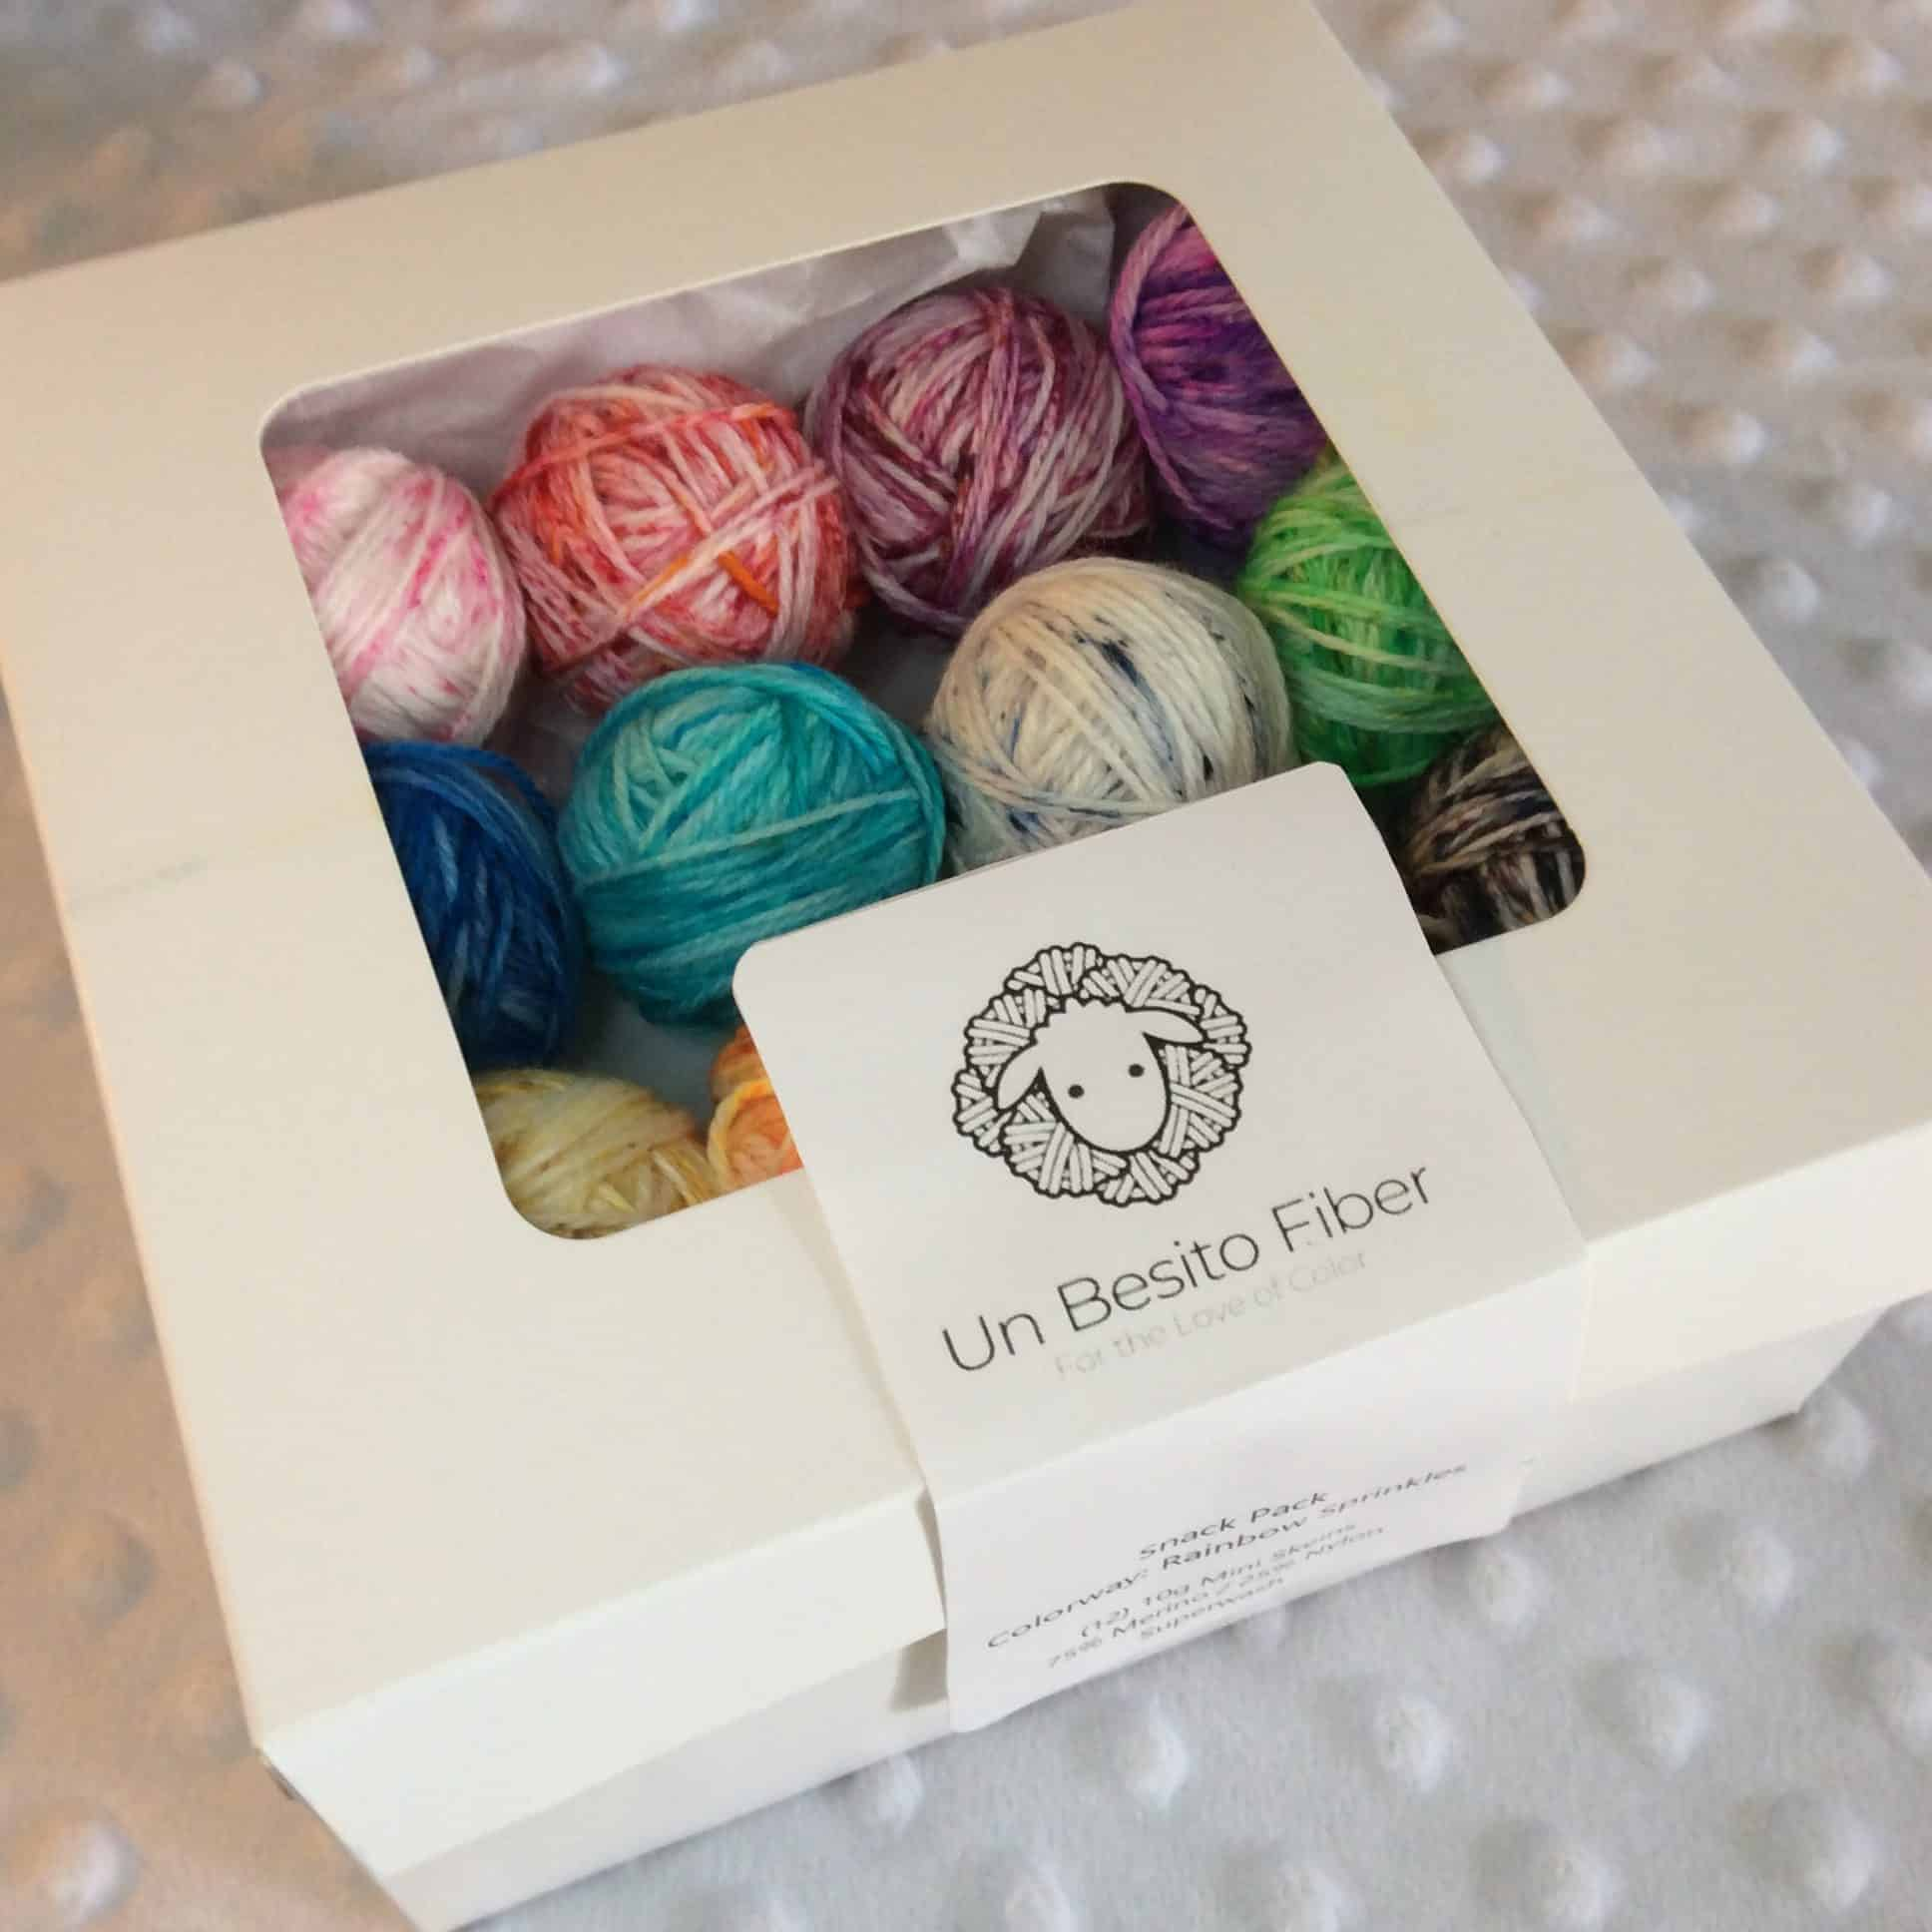 A bakery box with colorful yarn inside.